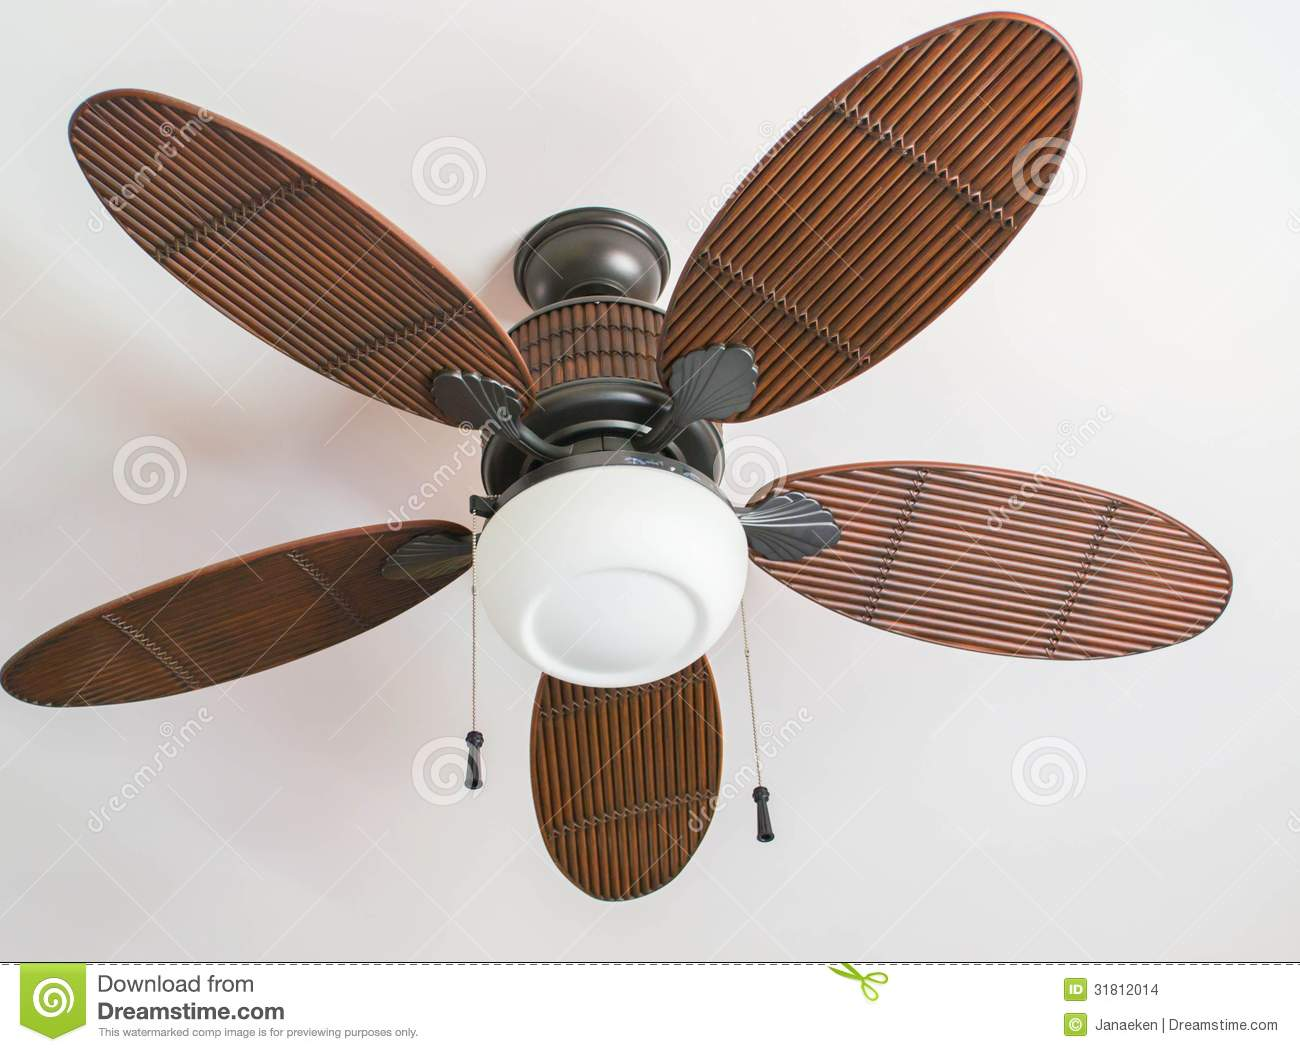 Ceiling Fan Stock Images - Image: 31812014